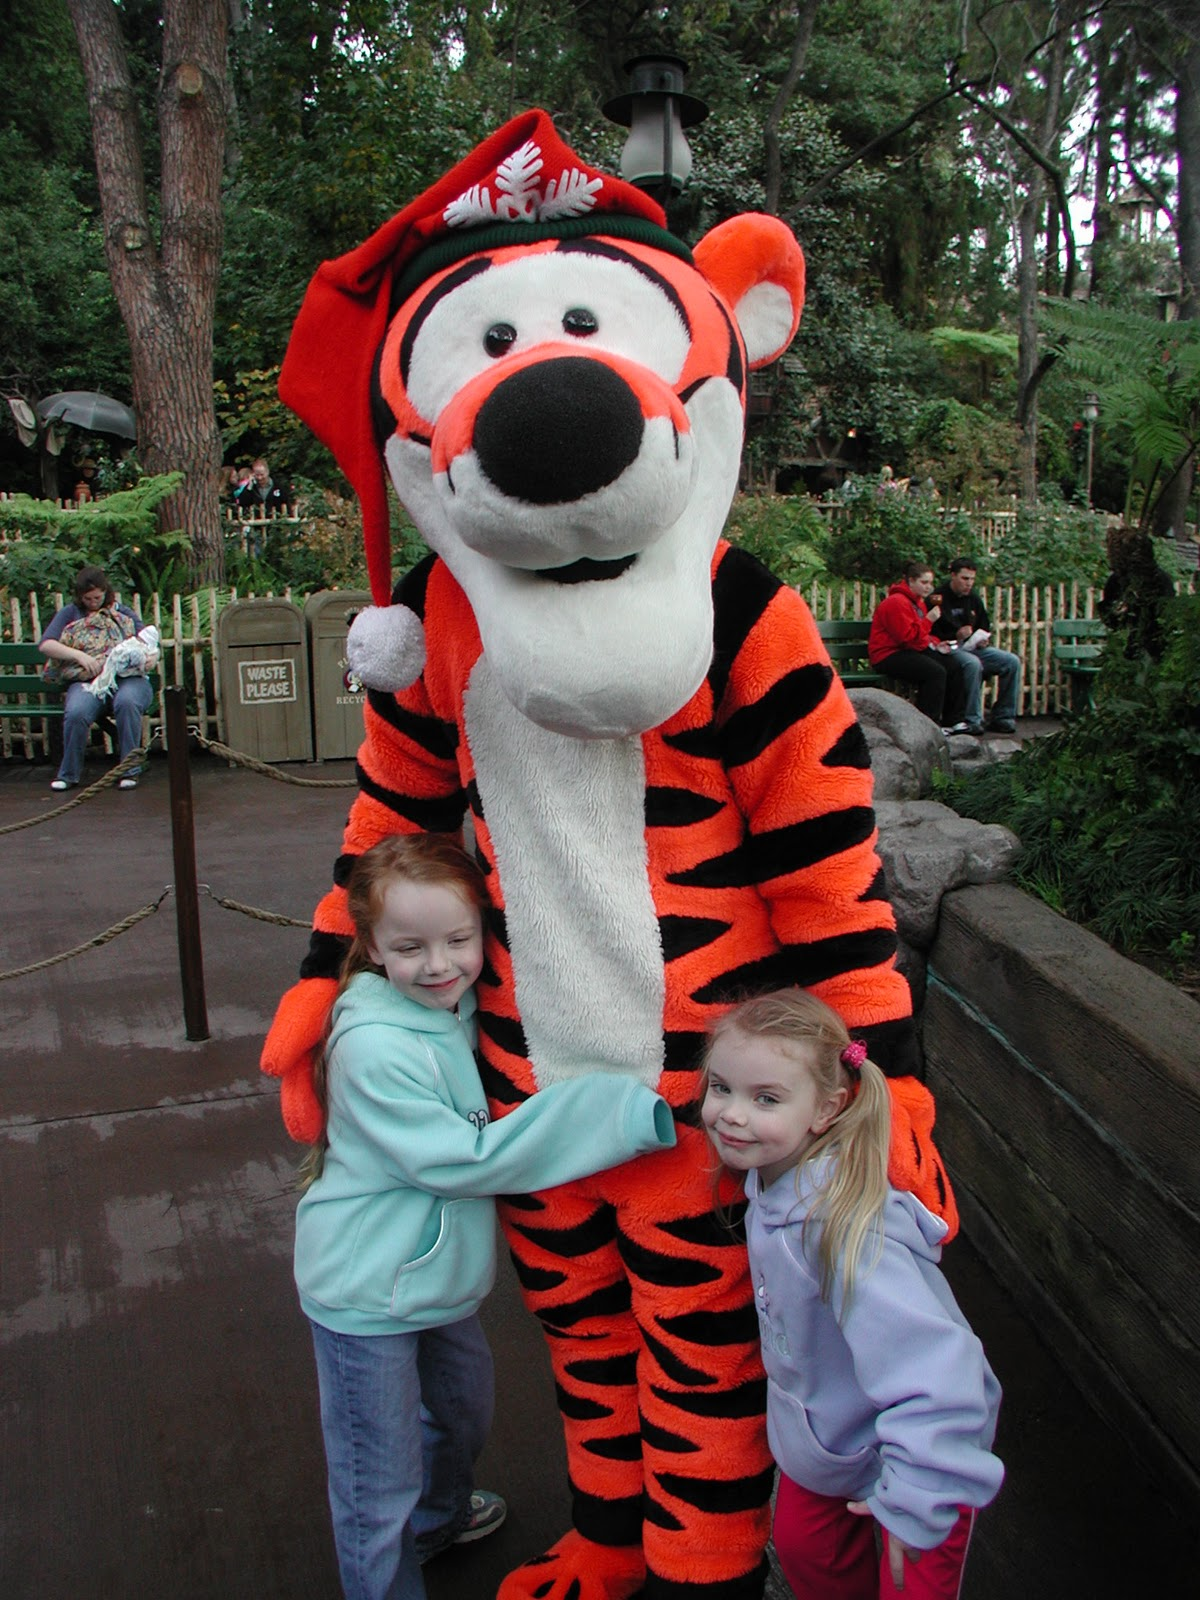 More Kids Than Suitcases Should You Visit Disneyland At